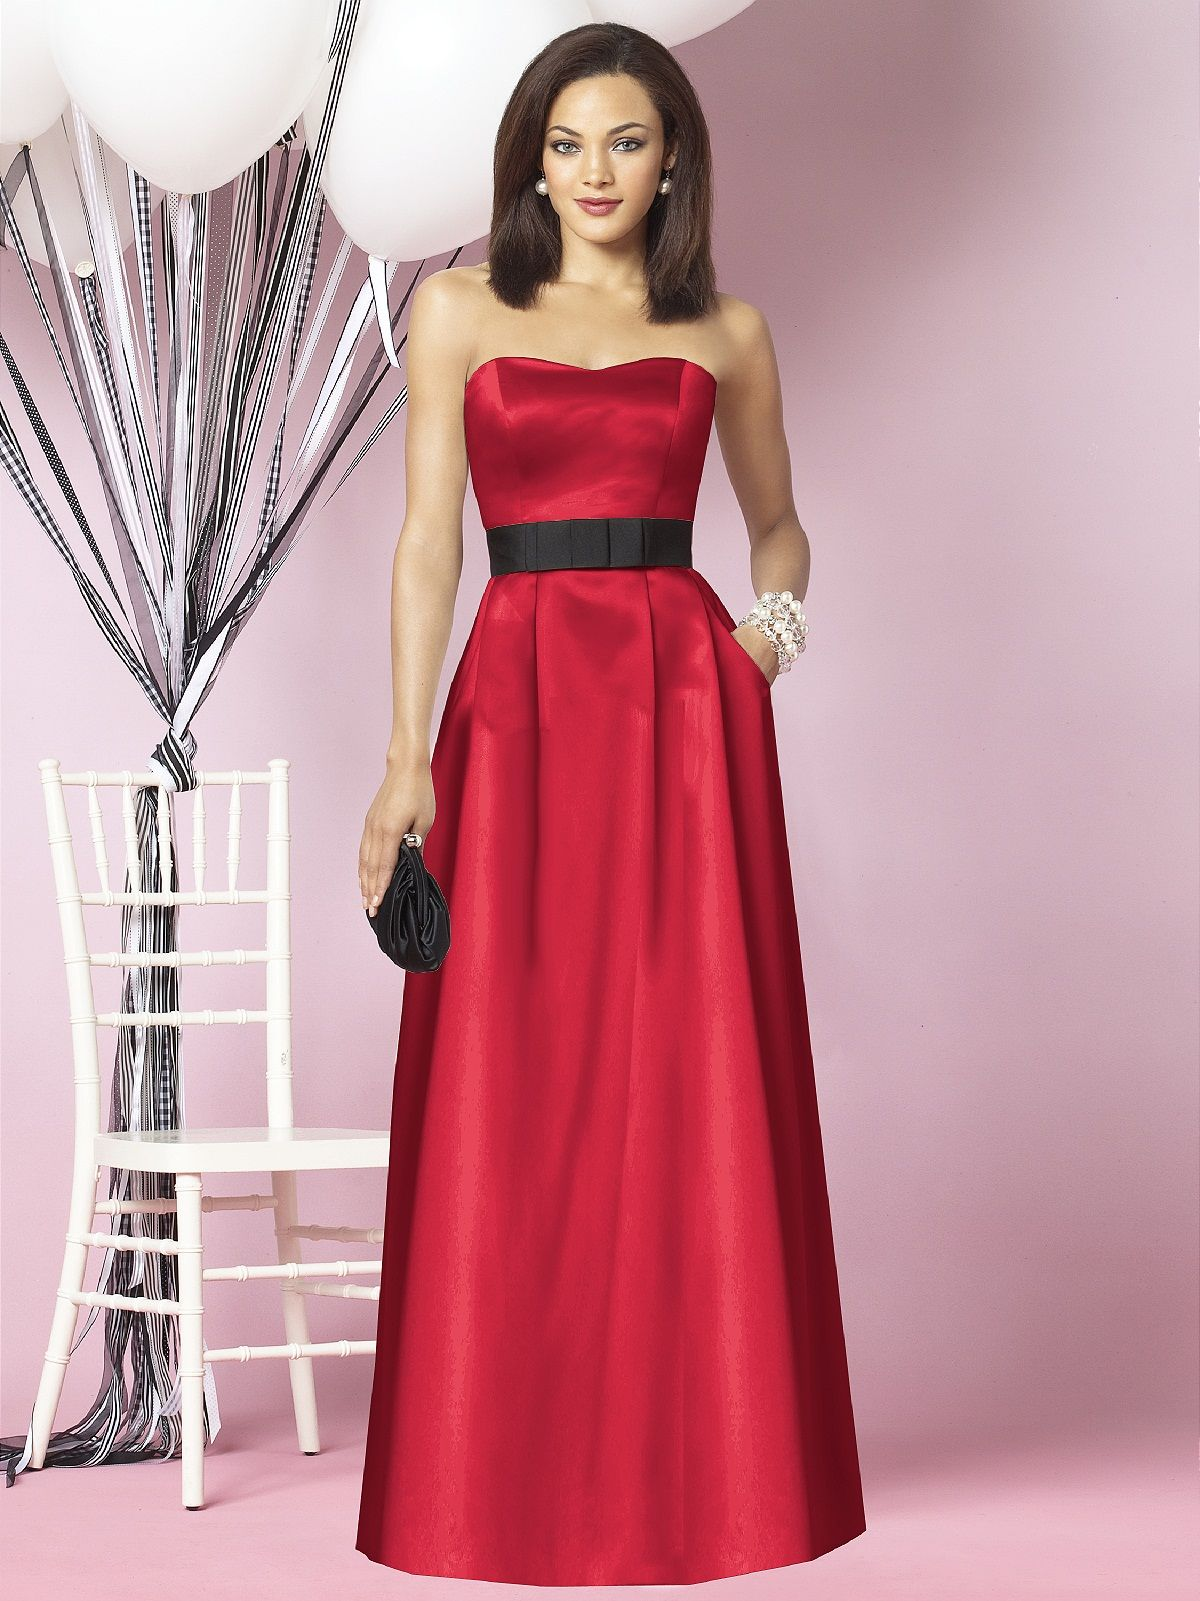 red dress | ... in Red and Black Bridesmaid Dresses: Unique and ...